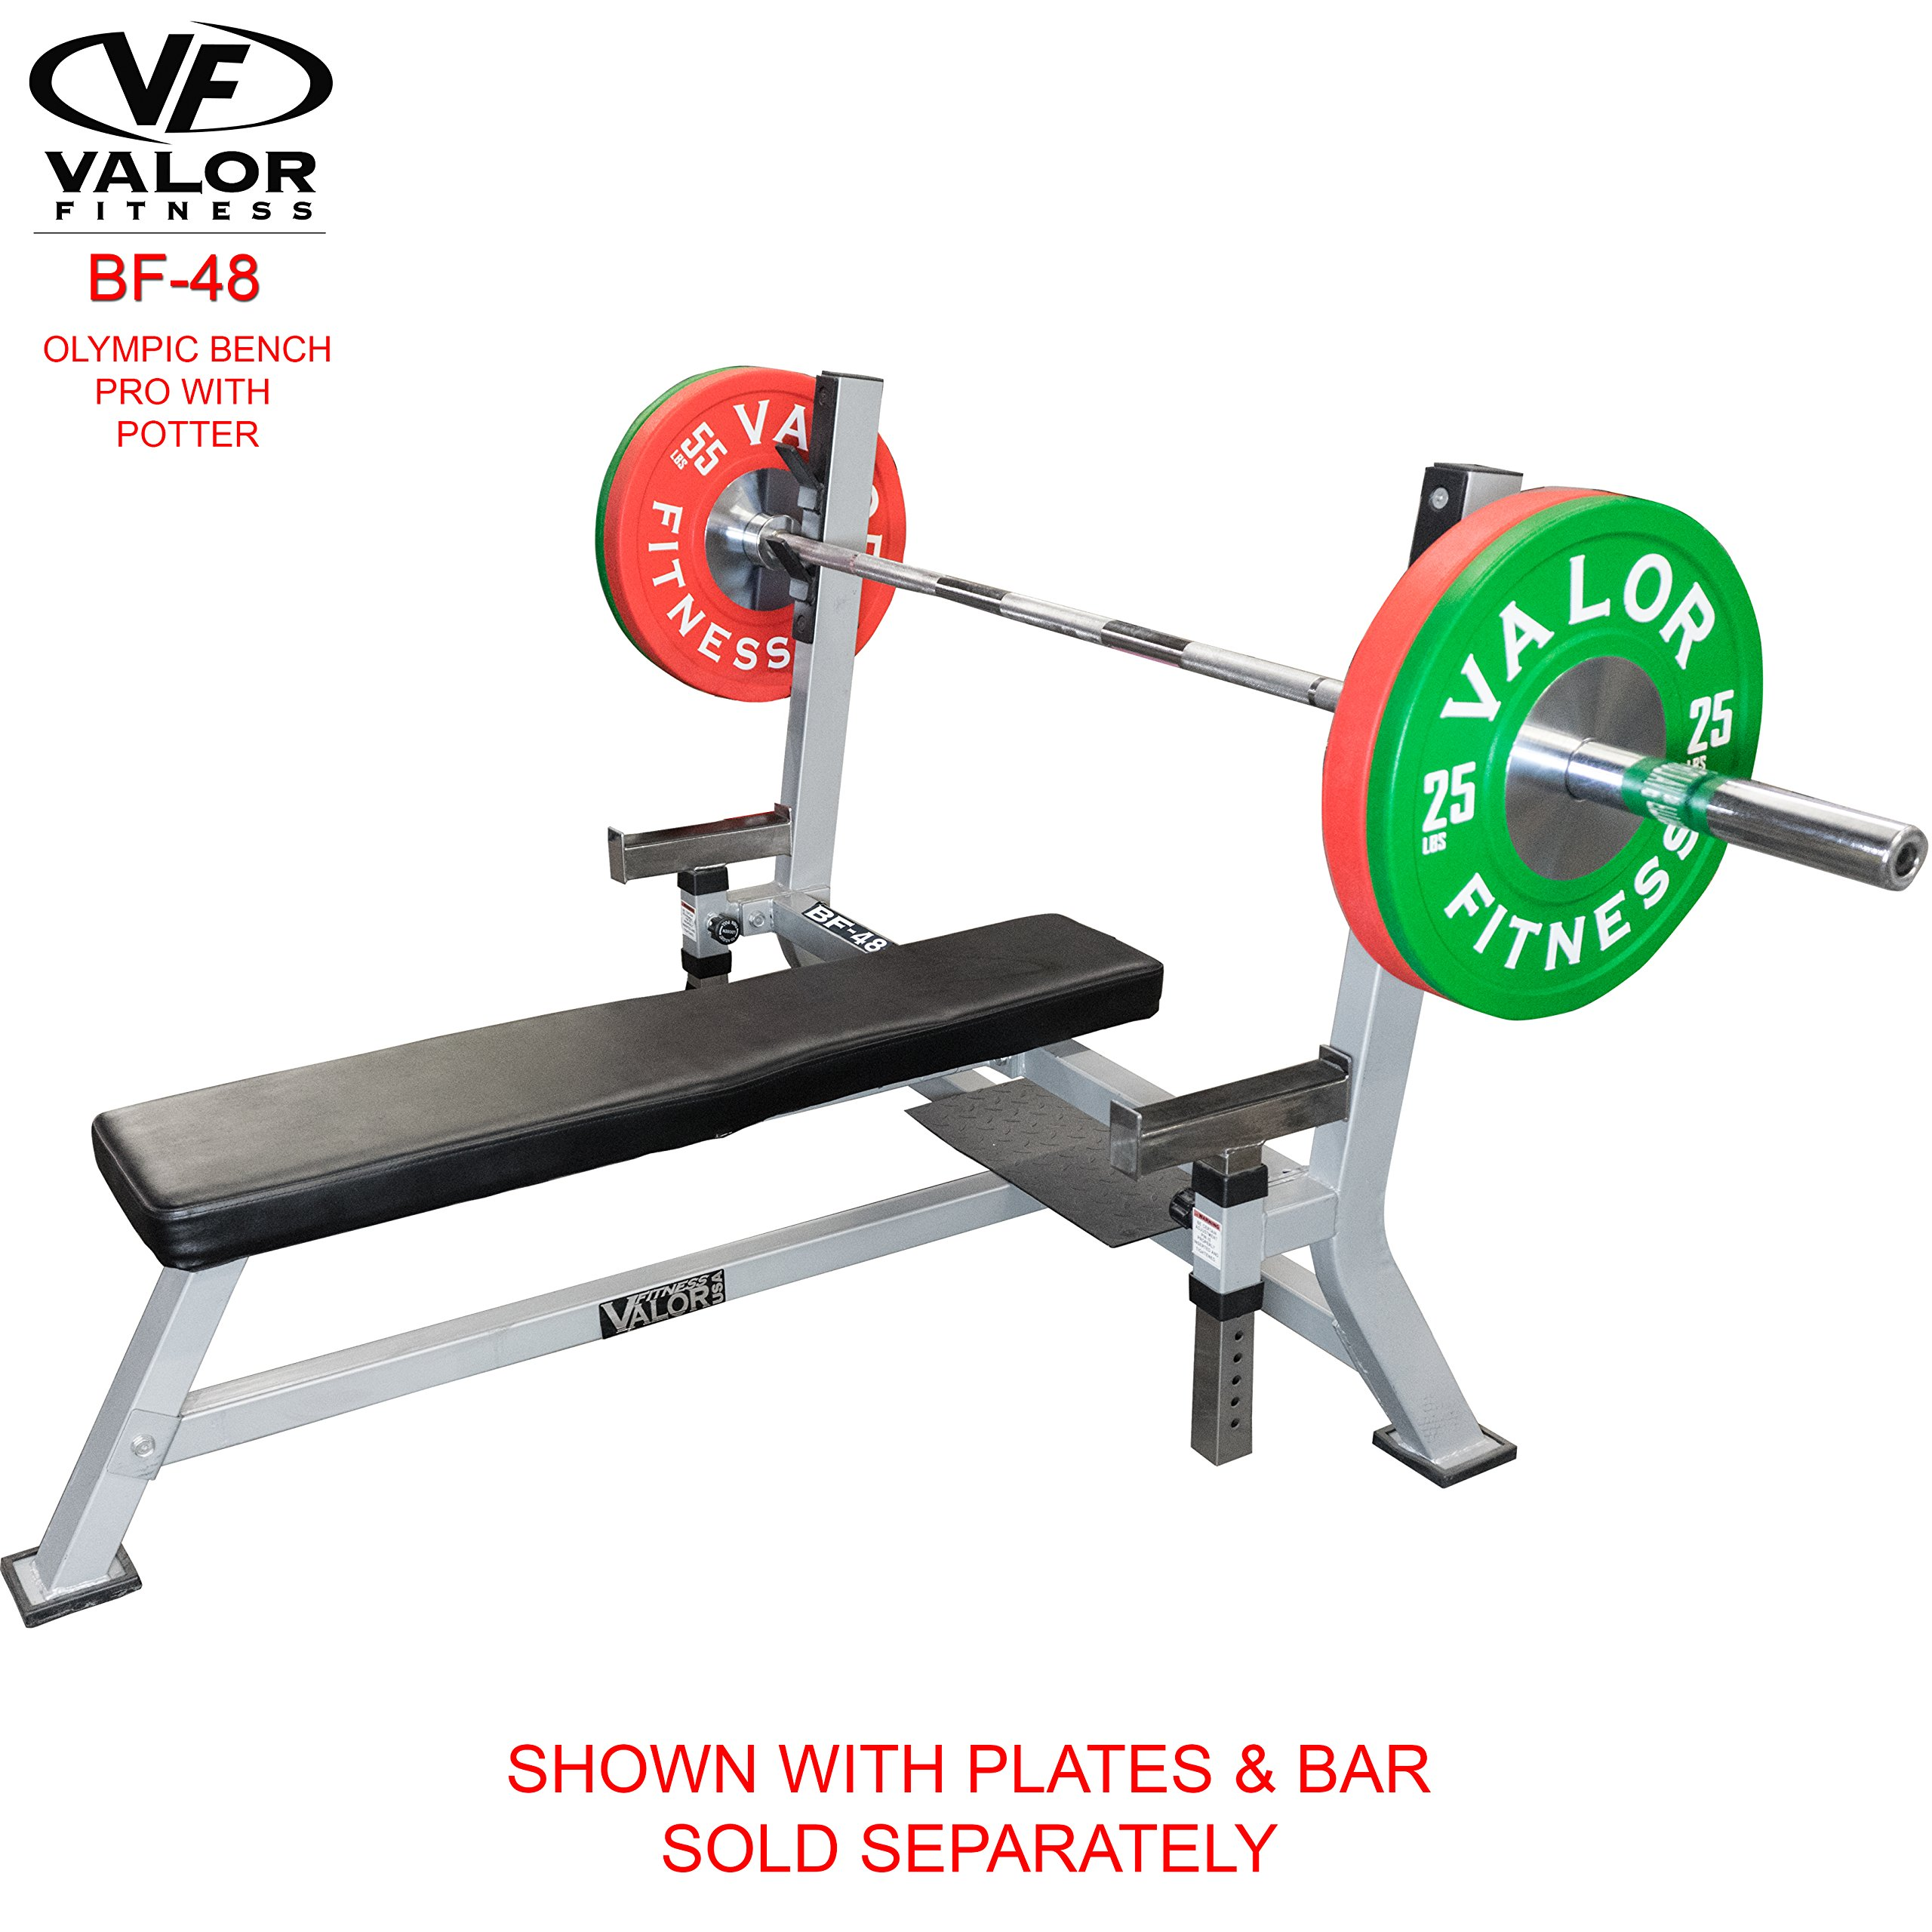 Valor Fitness BF-48 Olympic Bench Pro with Spotter by Valor Fitness (Image #2)